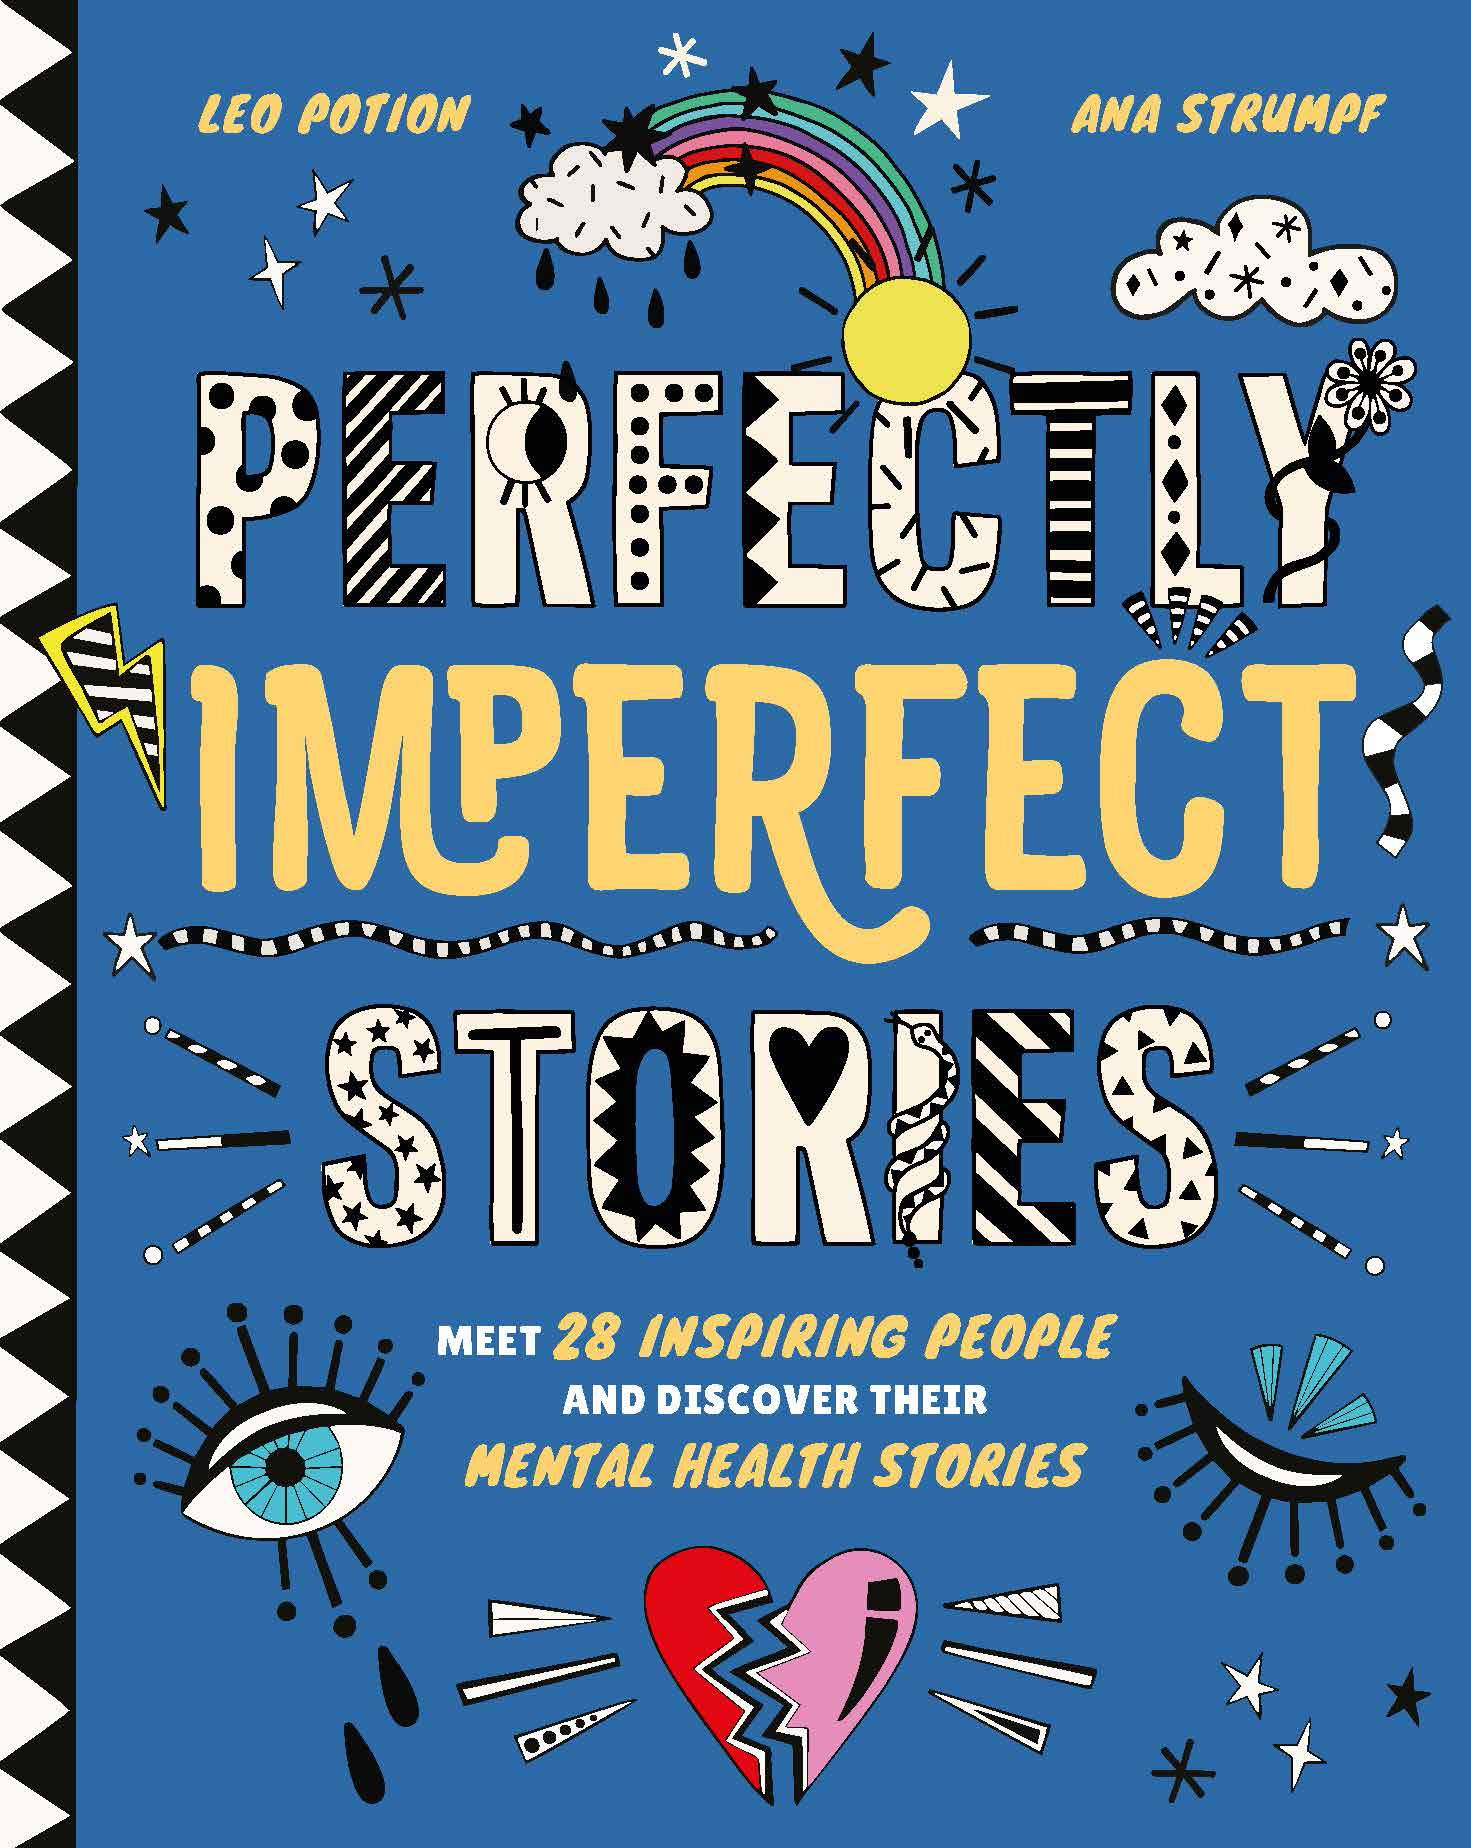 Perfectly Imperfect Stories: Meet 28 Inspiring People and Discover Their Mental Health Stories